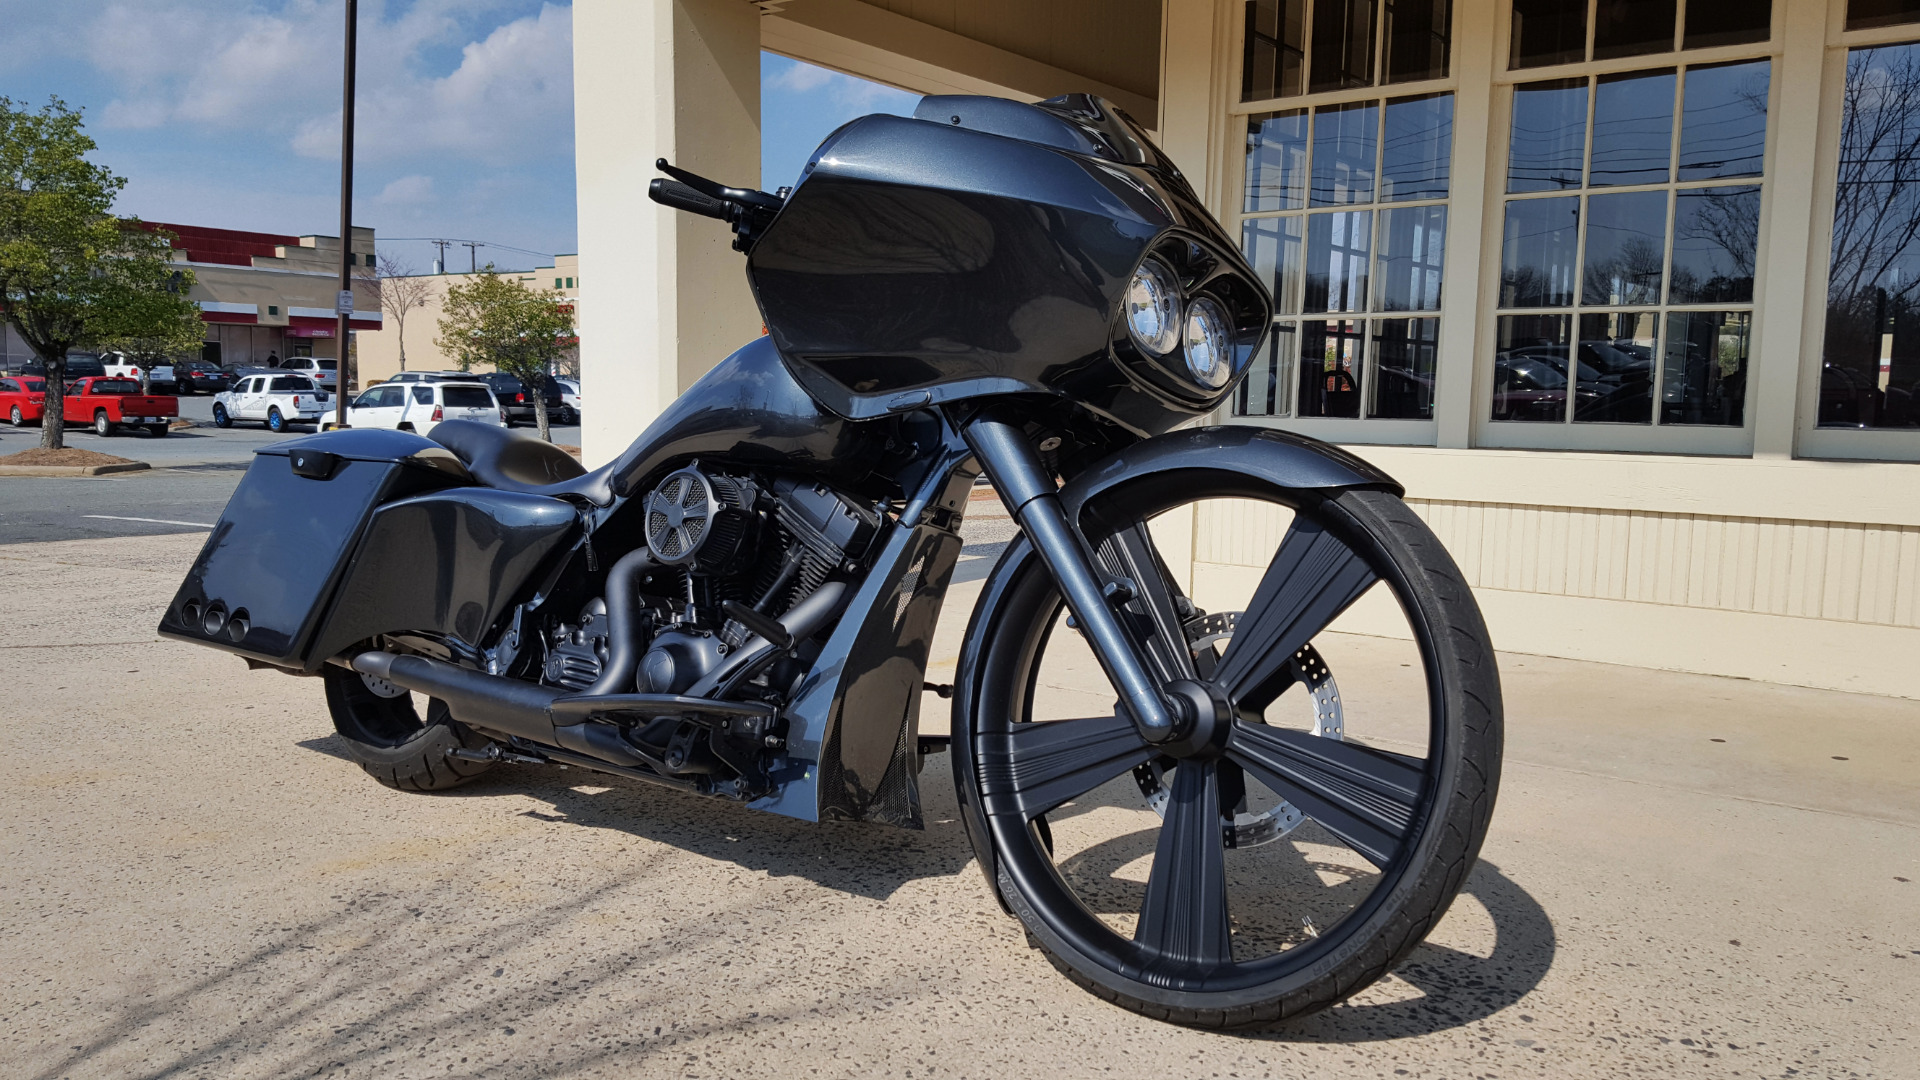 Used 2012 Harley-Davidson ROAD GLIDE NASI BAGGER for sale Sold at Formula Imports in Charlotte NC 28227 2